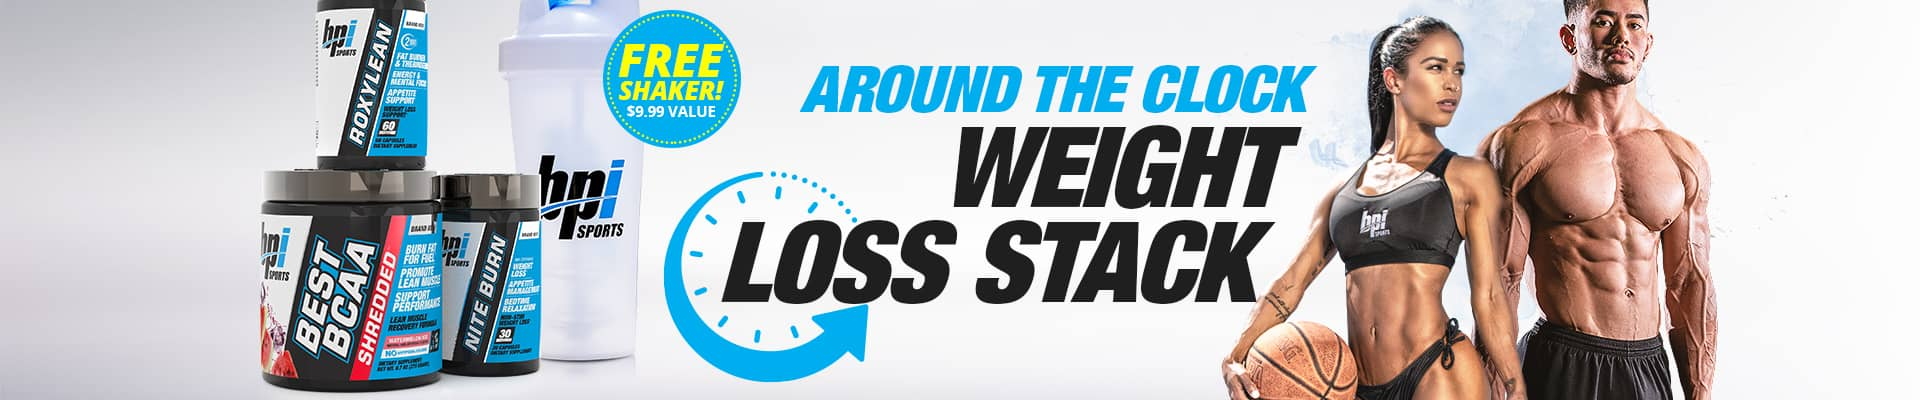 Around The Clock Weight Loss Stack Promo